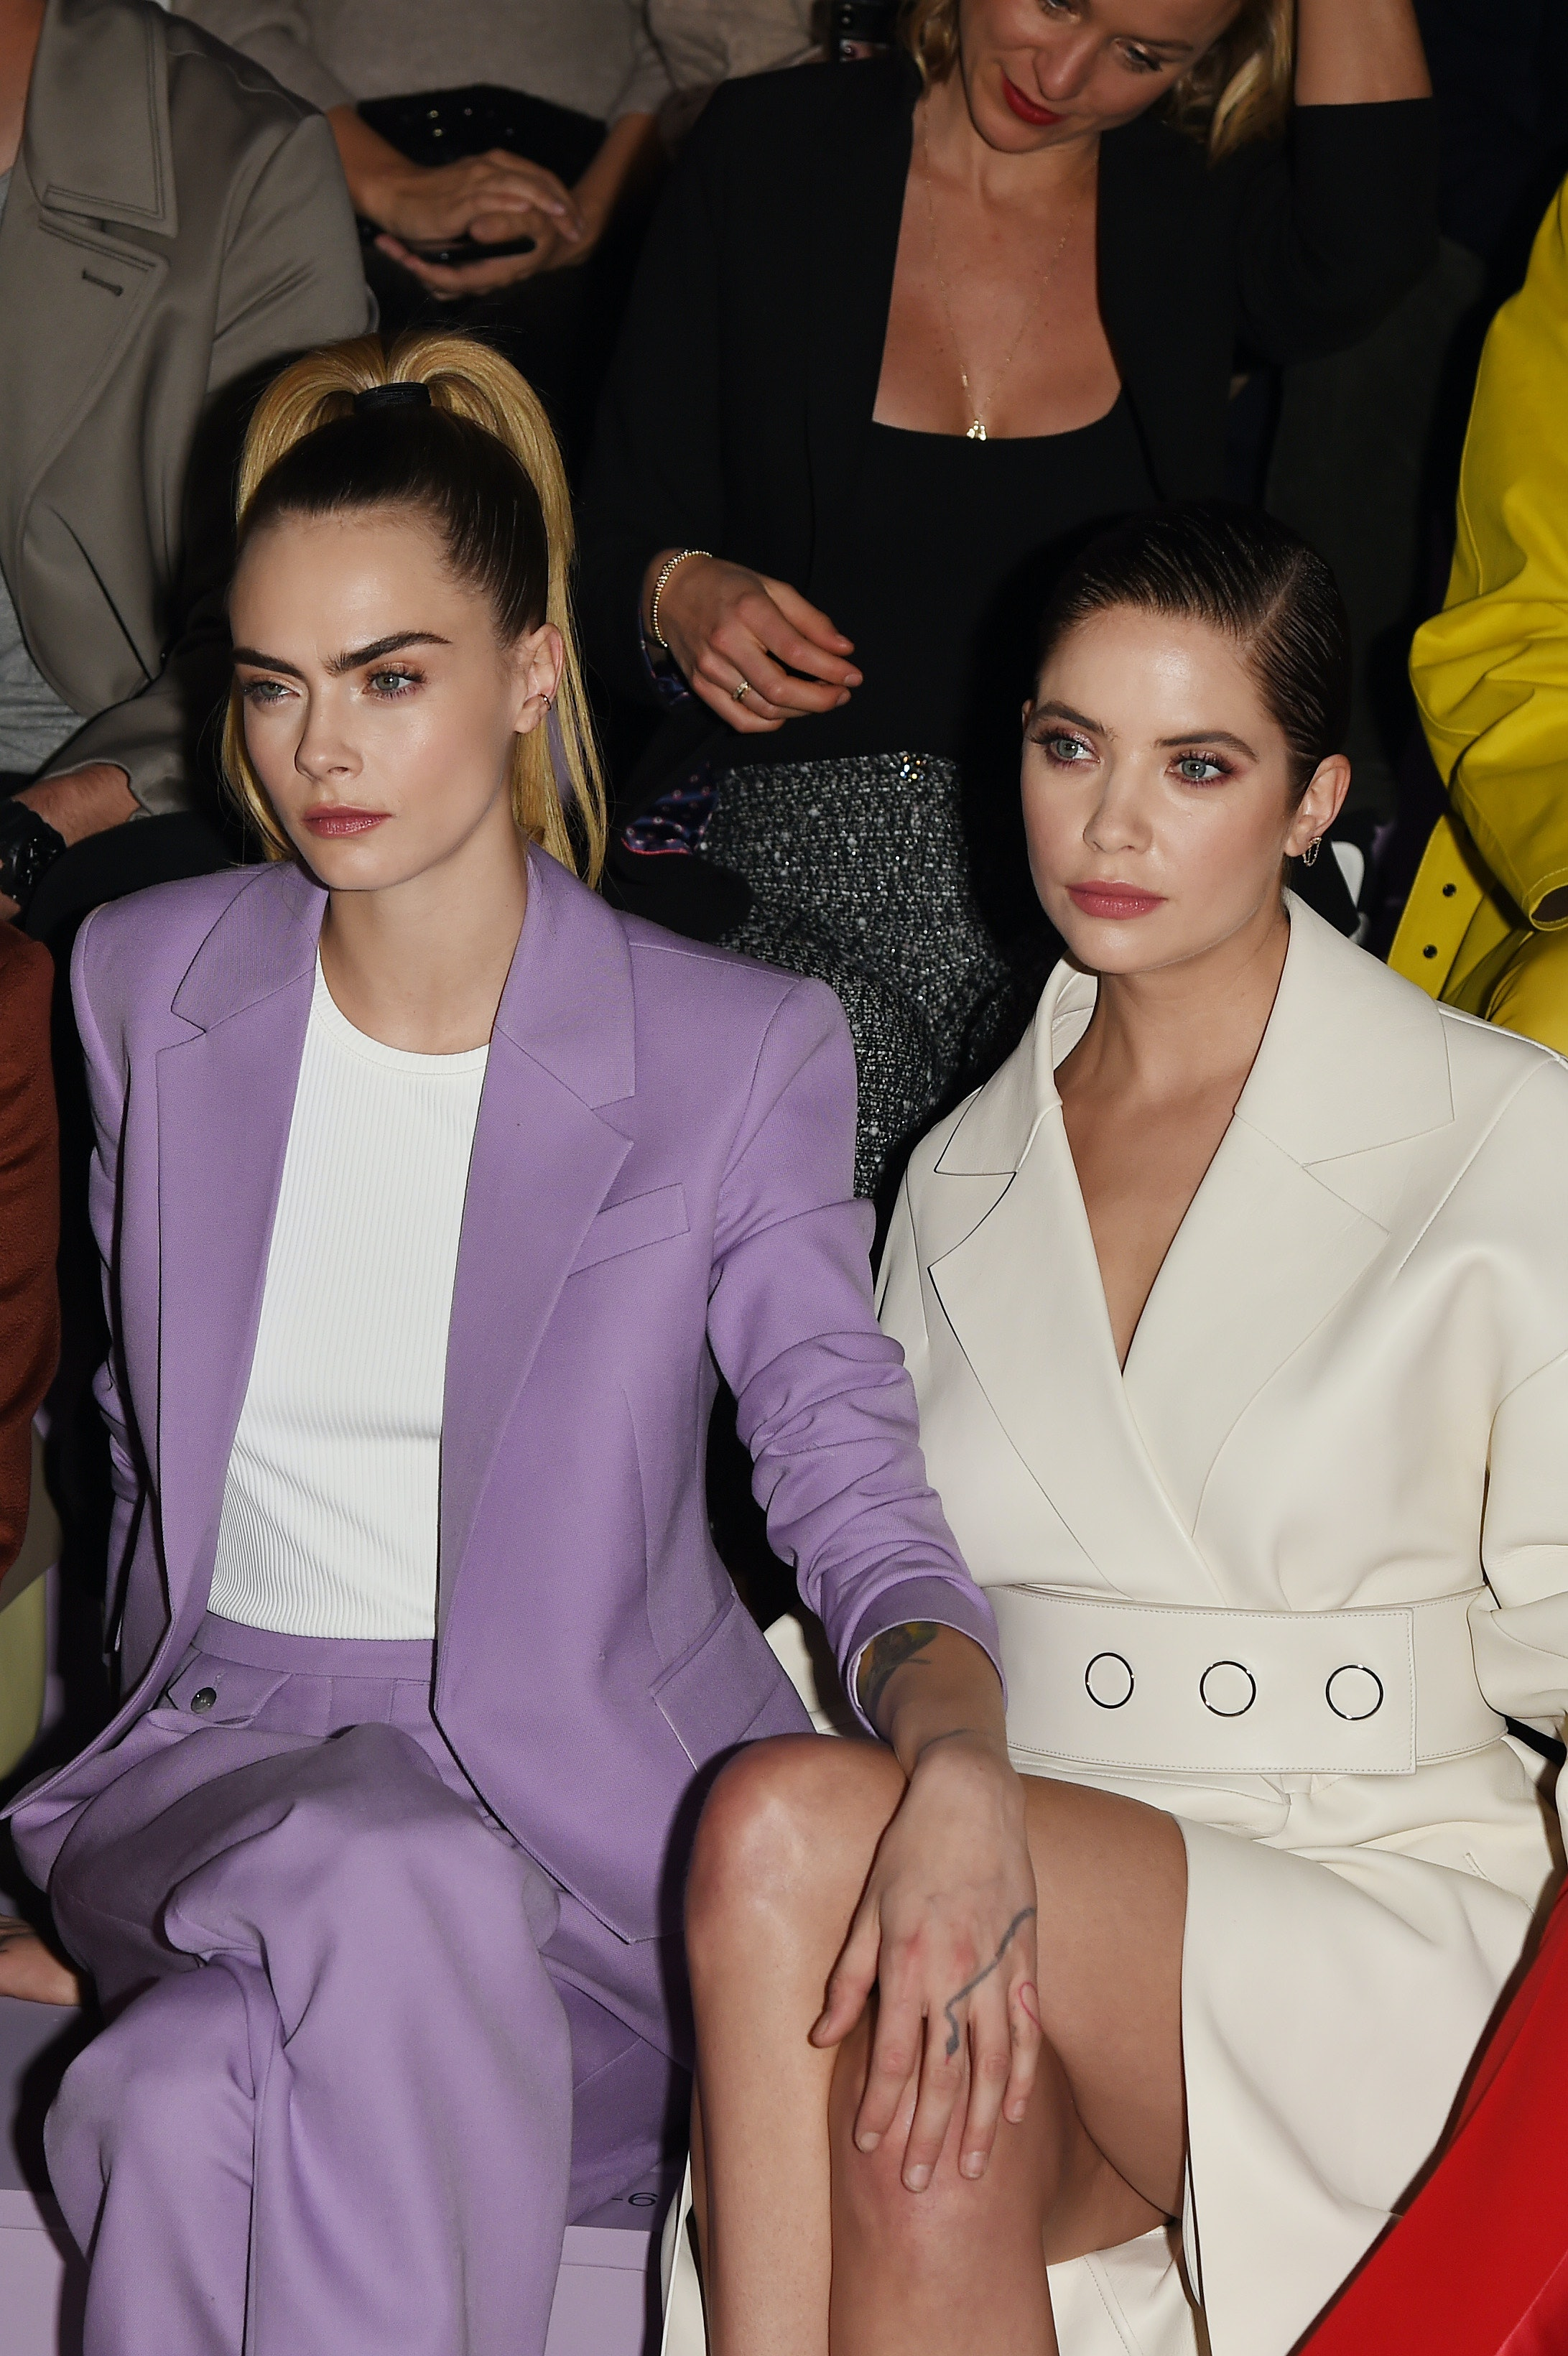 Ashley Benson Cara Delevingne Reportedly Split After 2 Years Of Dating